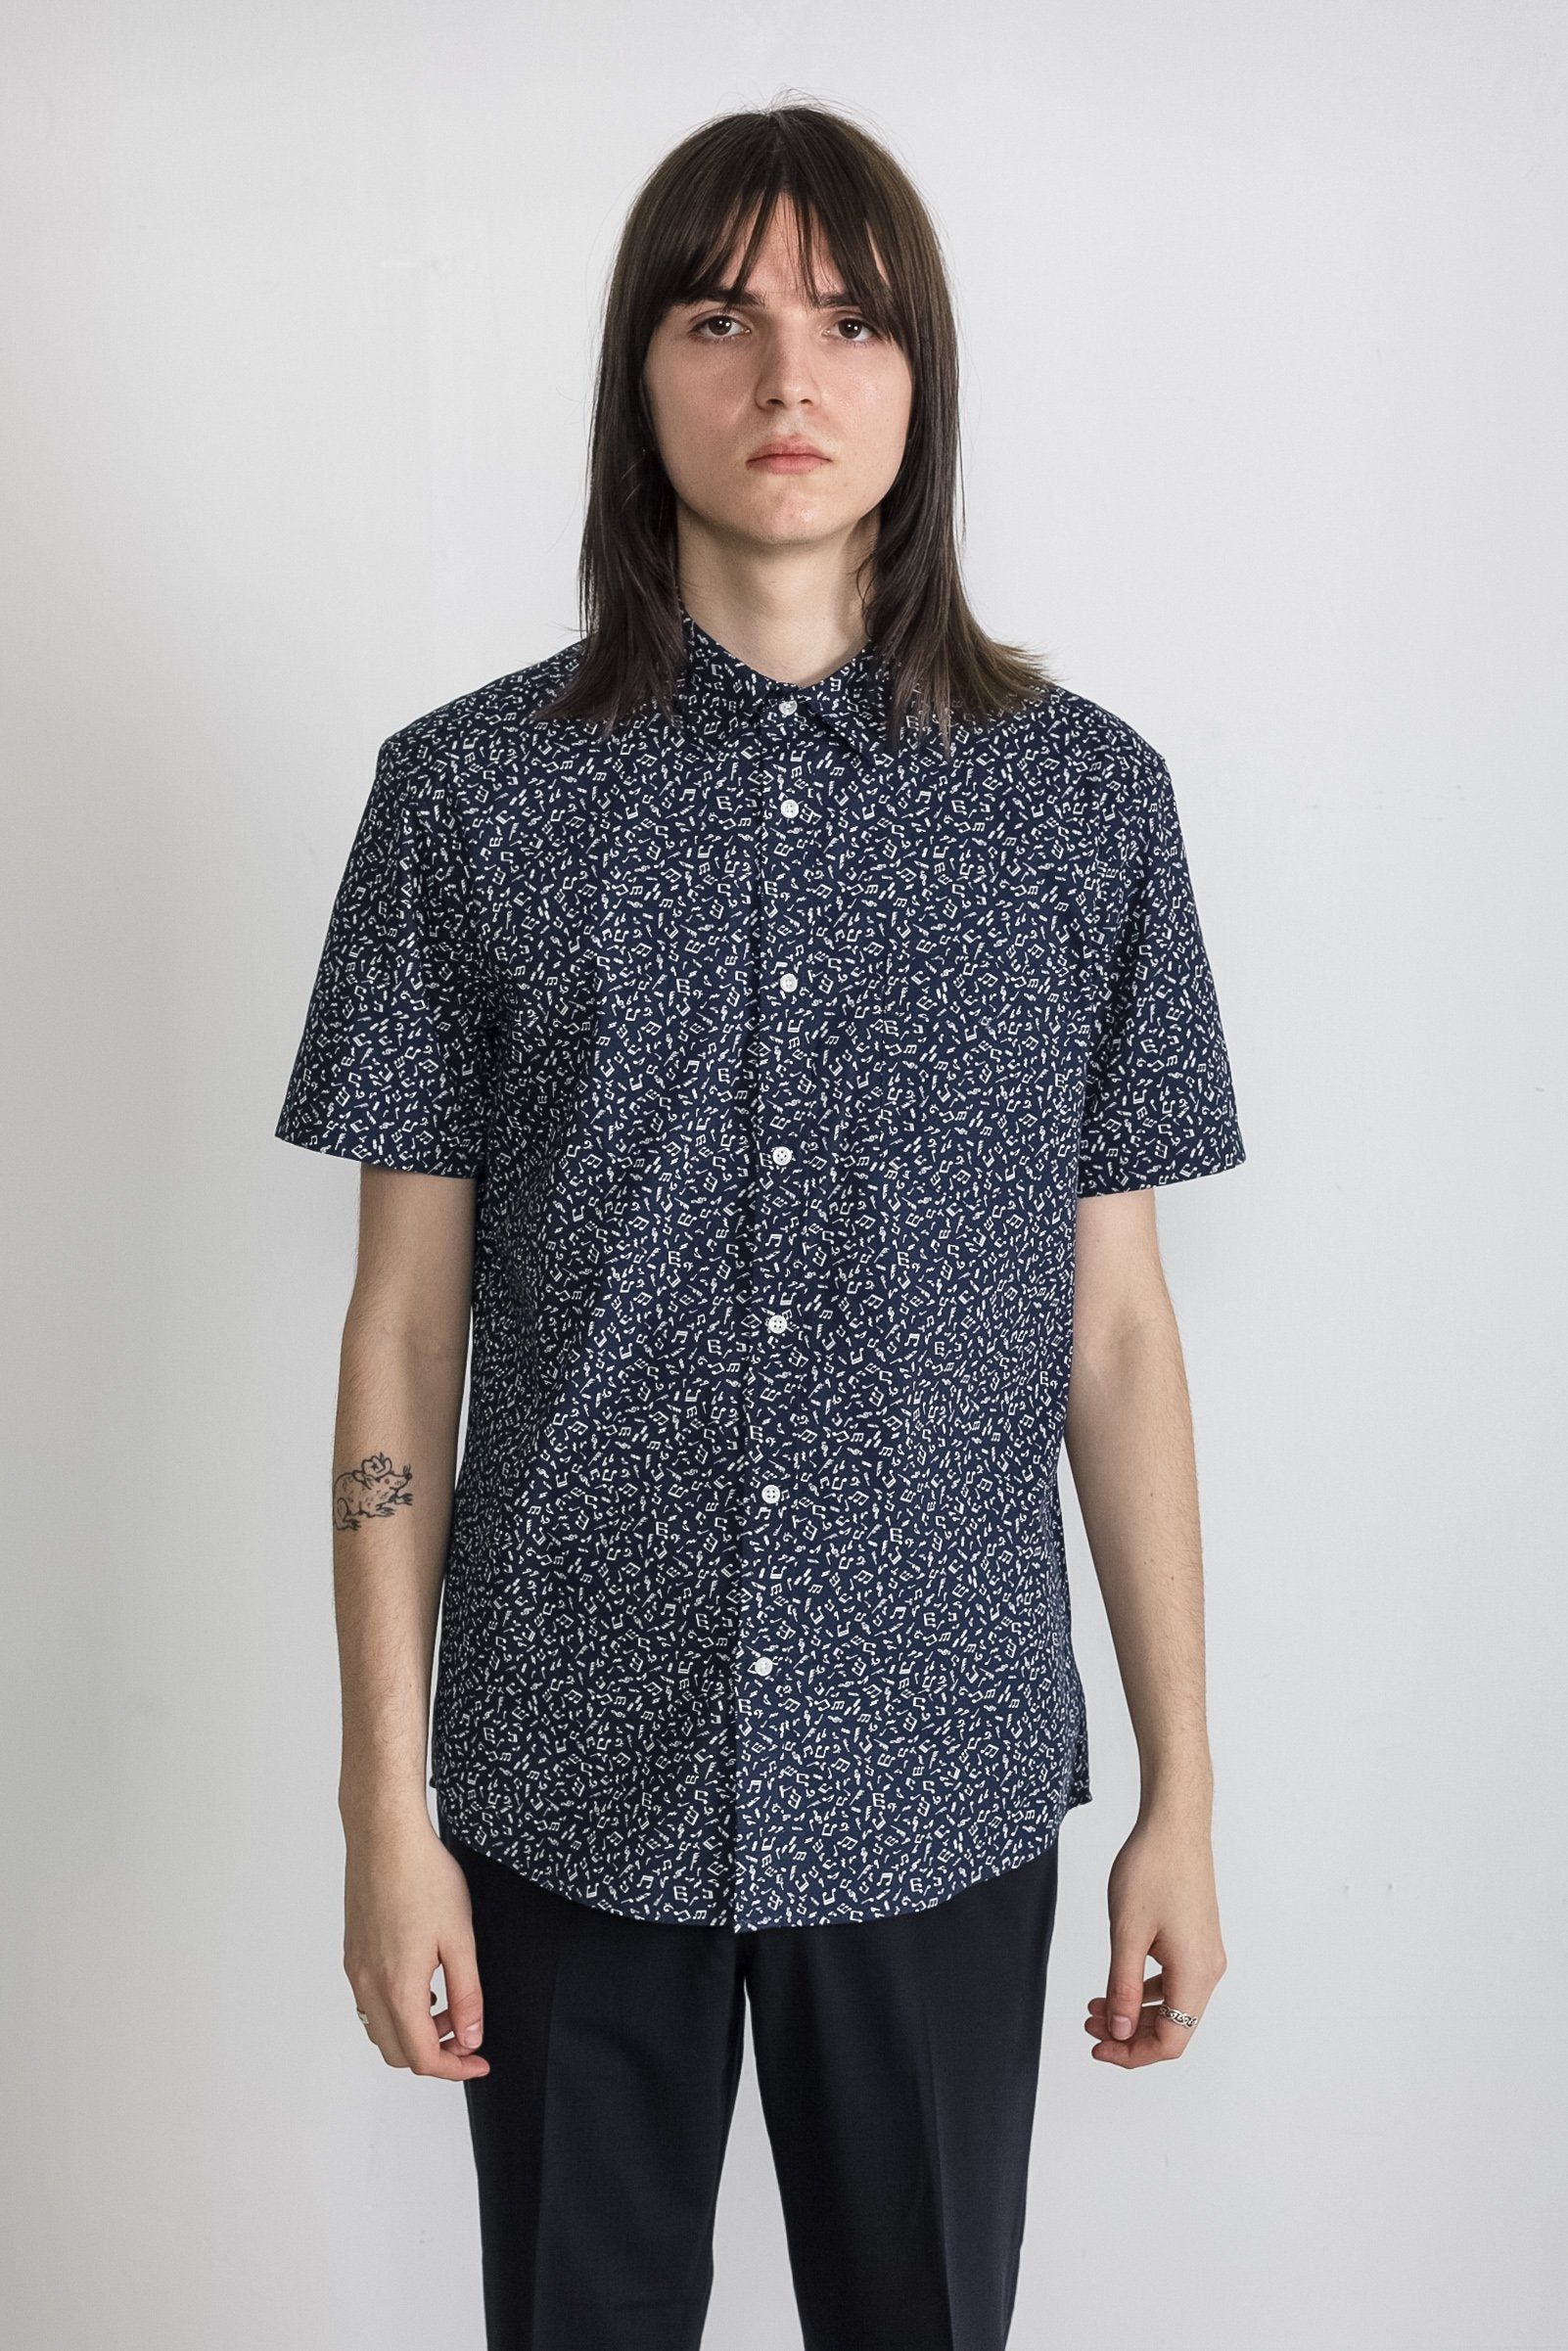 Japanese Musician Print in Navy 001